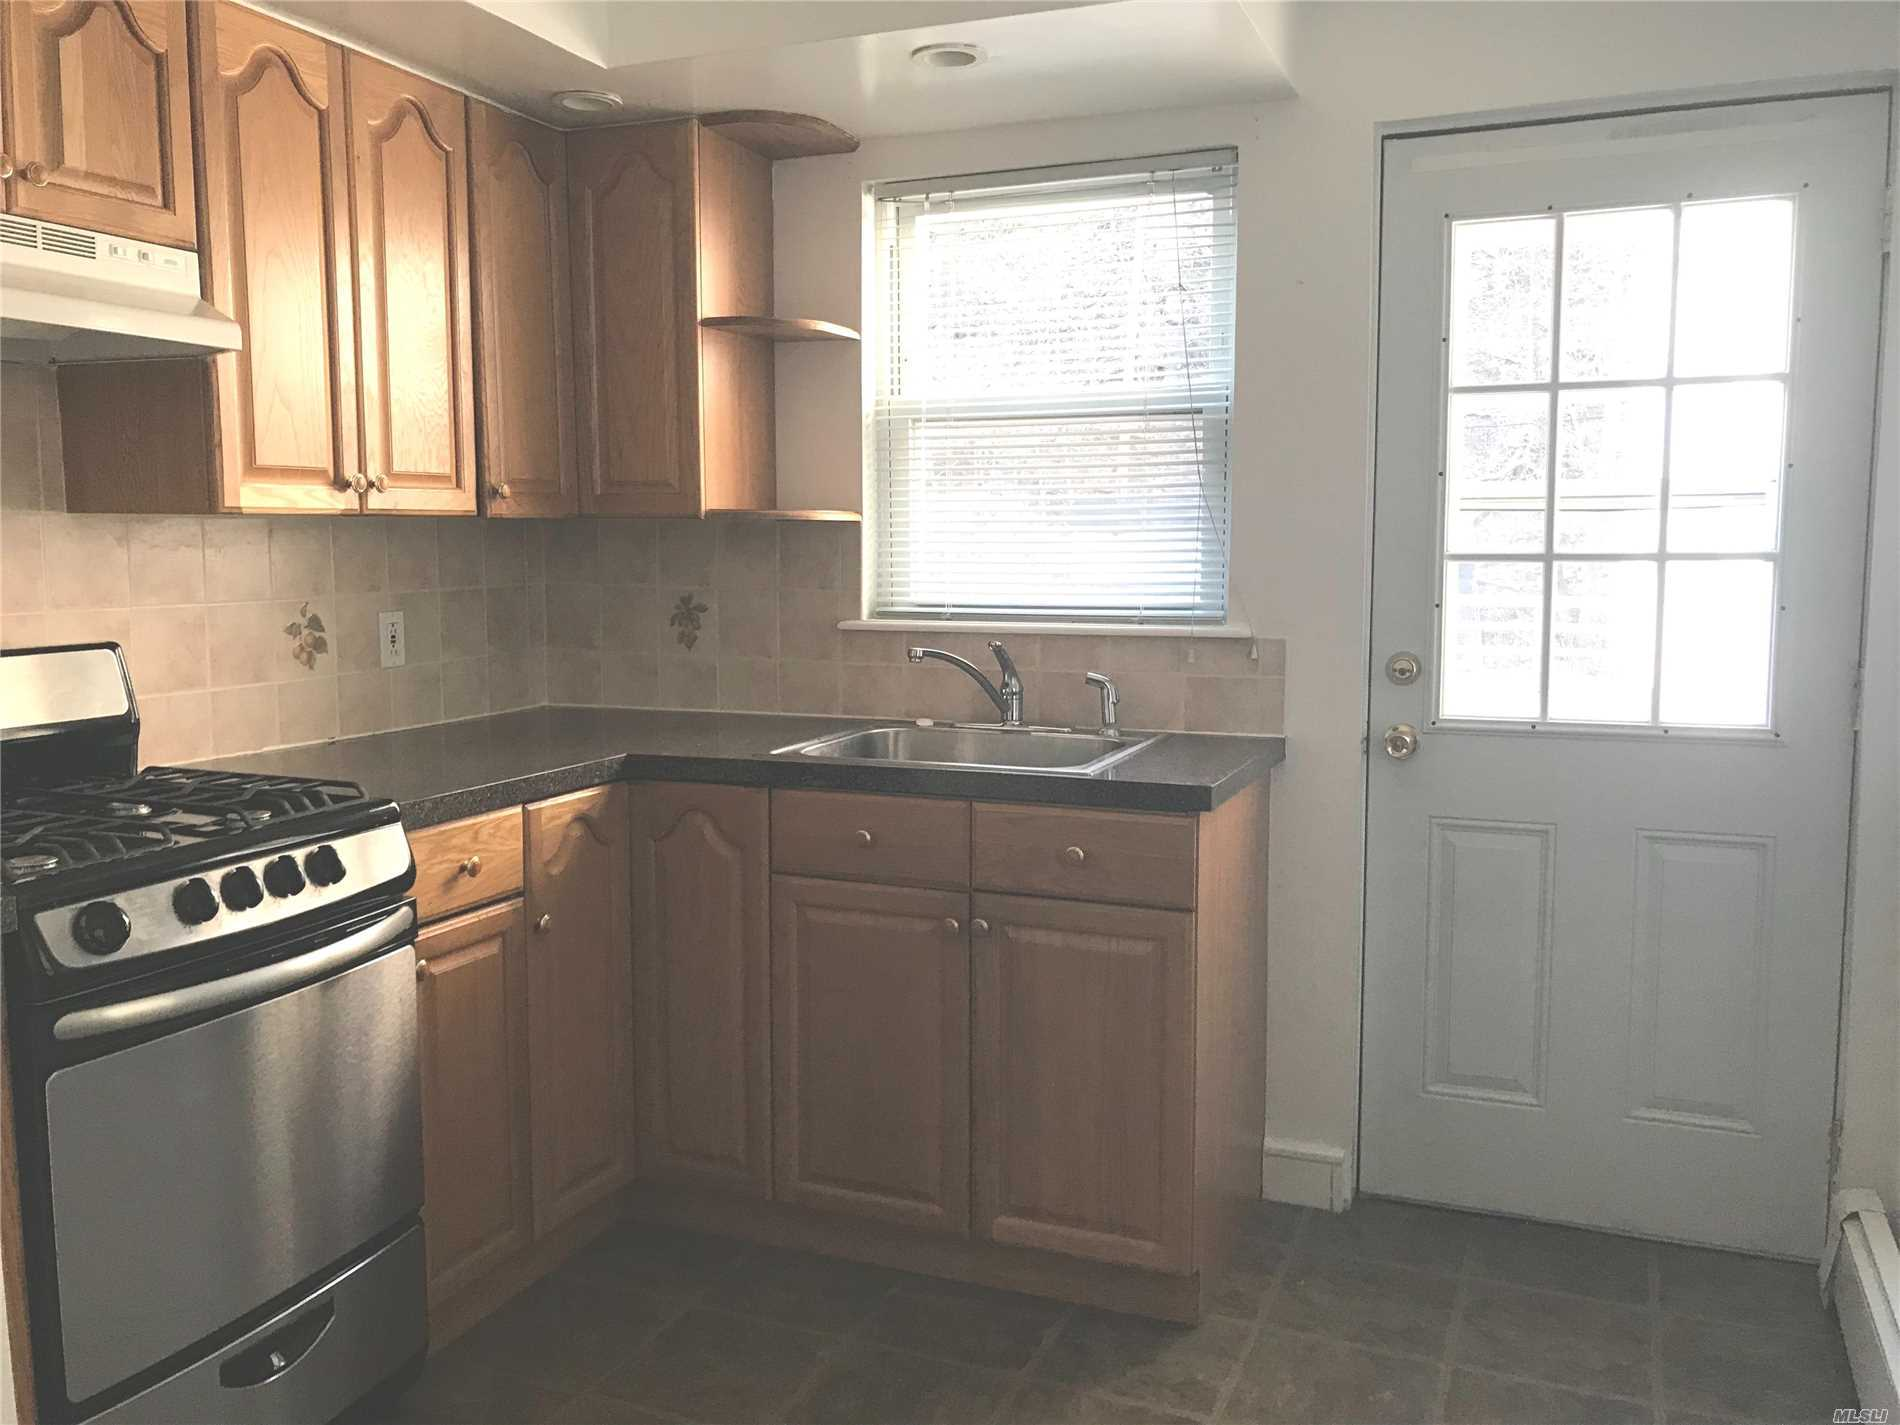 WONDERFUL 2ND FLOOR VILLAGE APARTMENT. Beautiful Hardwood Floors. Credit above 720. References. Two Months SECURITY. NO PETS. NO SMOKING. approx. 650sq. feet-No usage of Rooftop